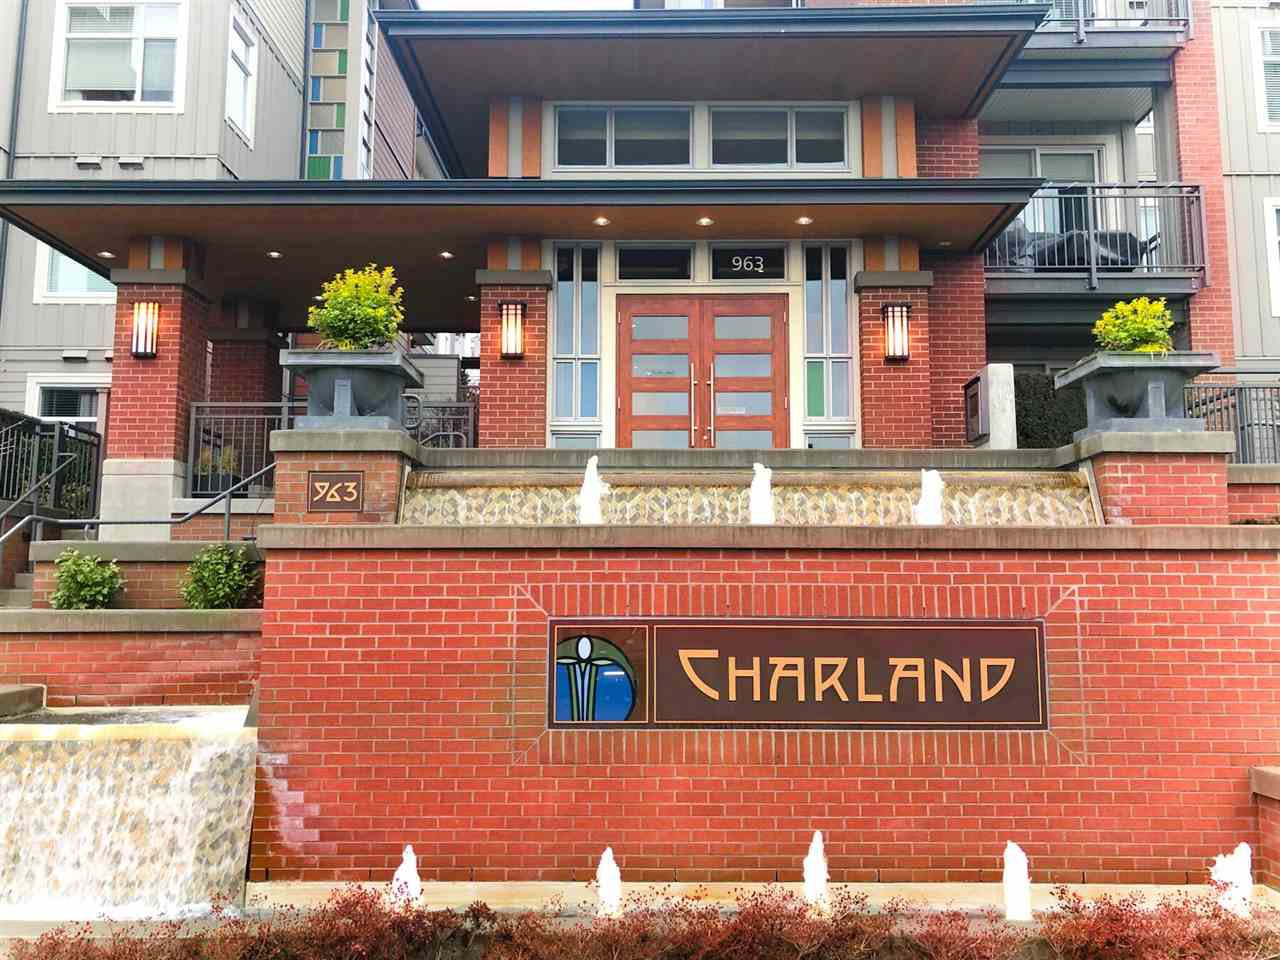 "Main Photo: 2209 963 CHARLAND Avenue in Coquitlam: Central Coquitlam Condo for sale in ""CHARLAND"" : MLS®# R2423120"